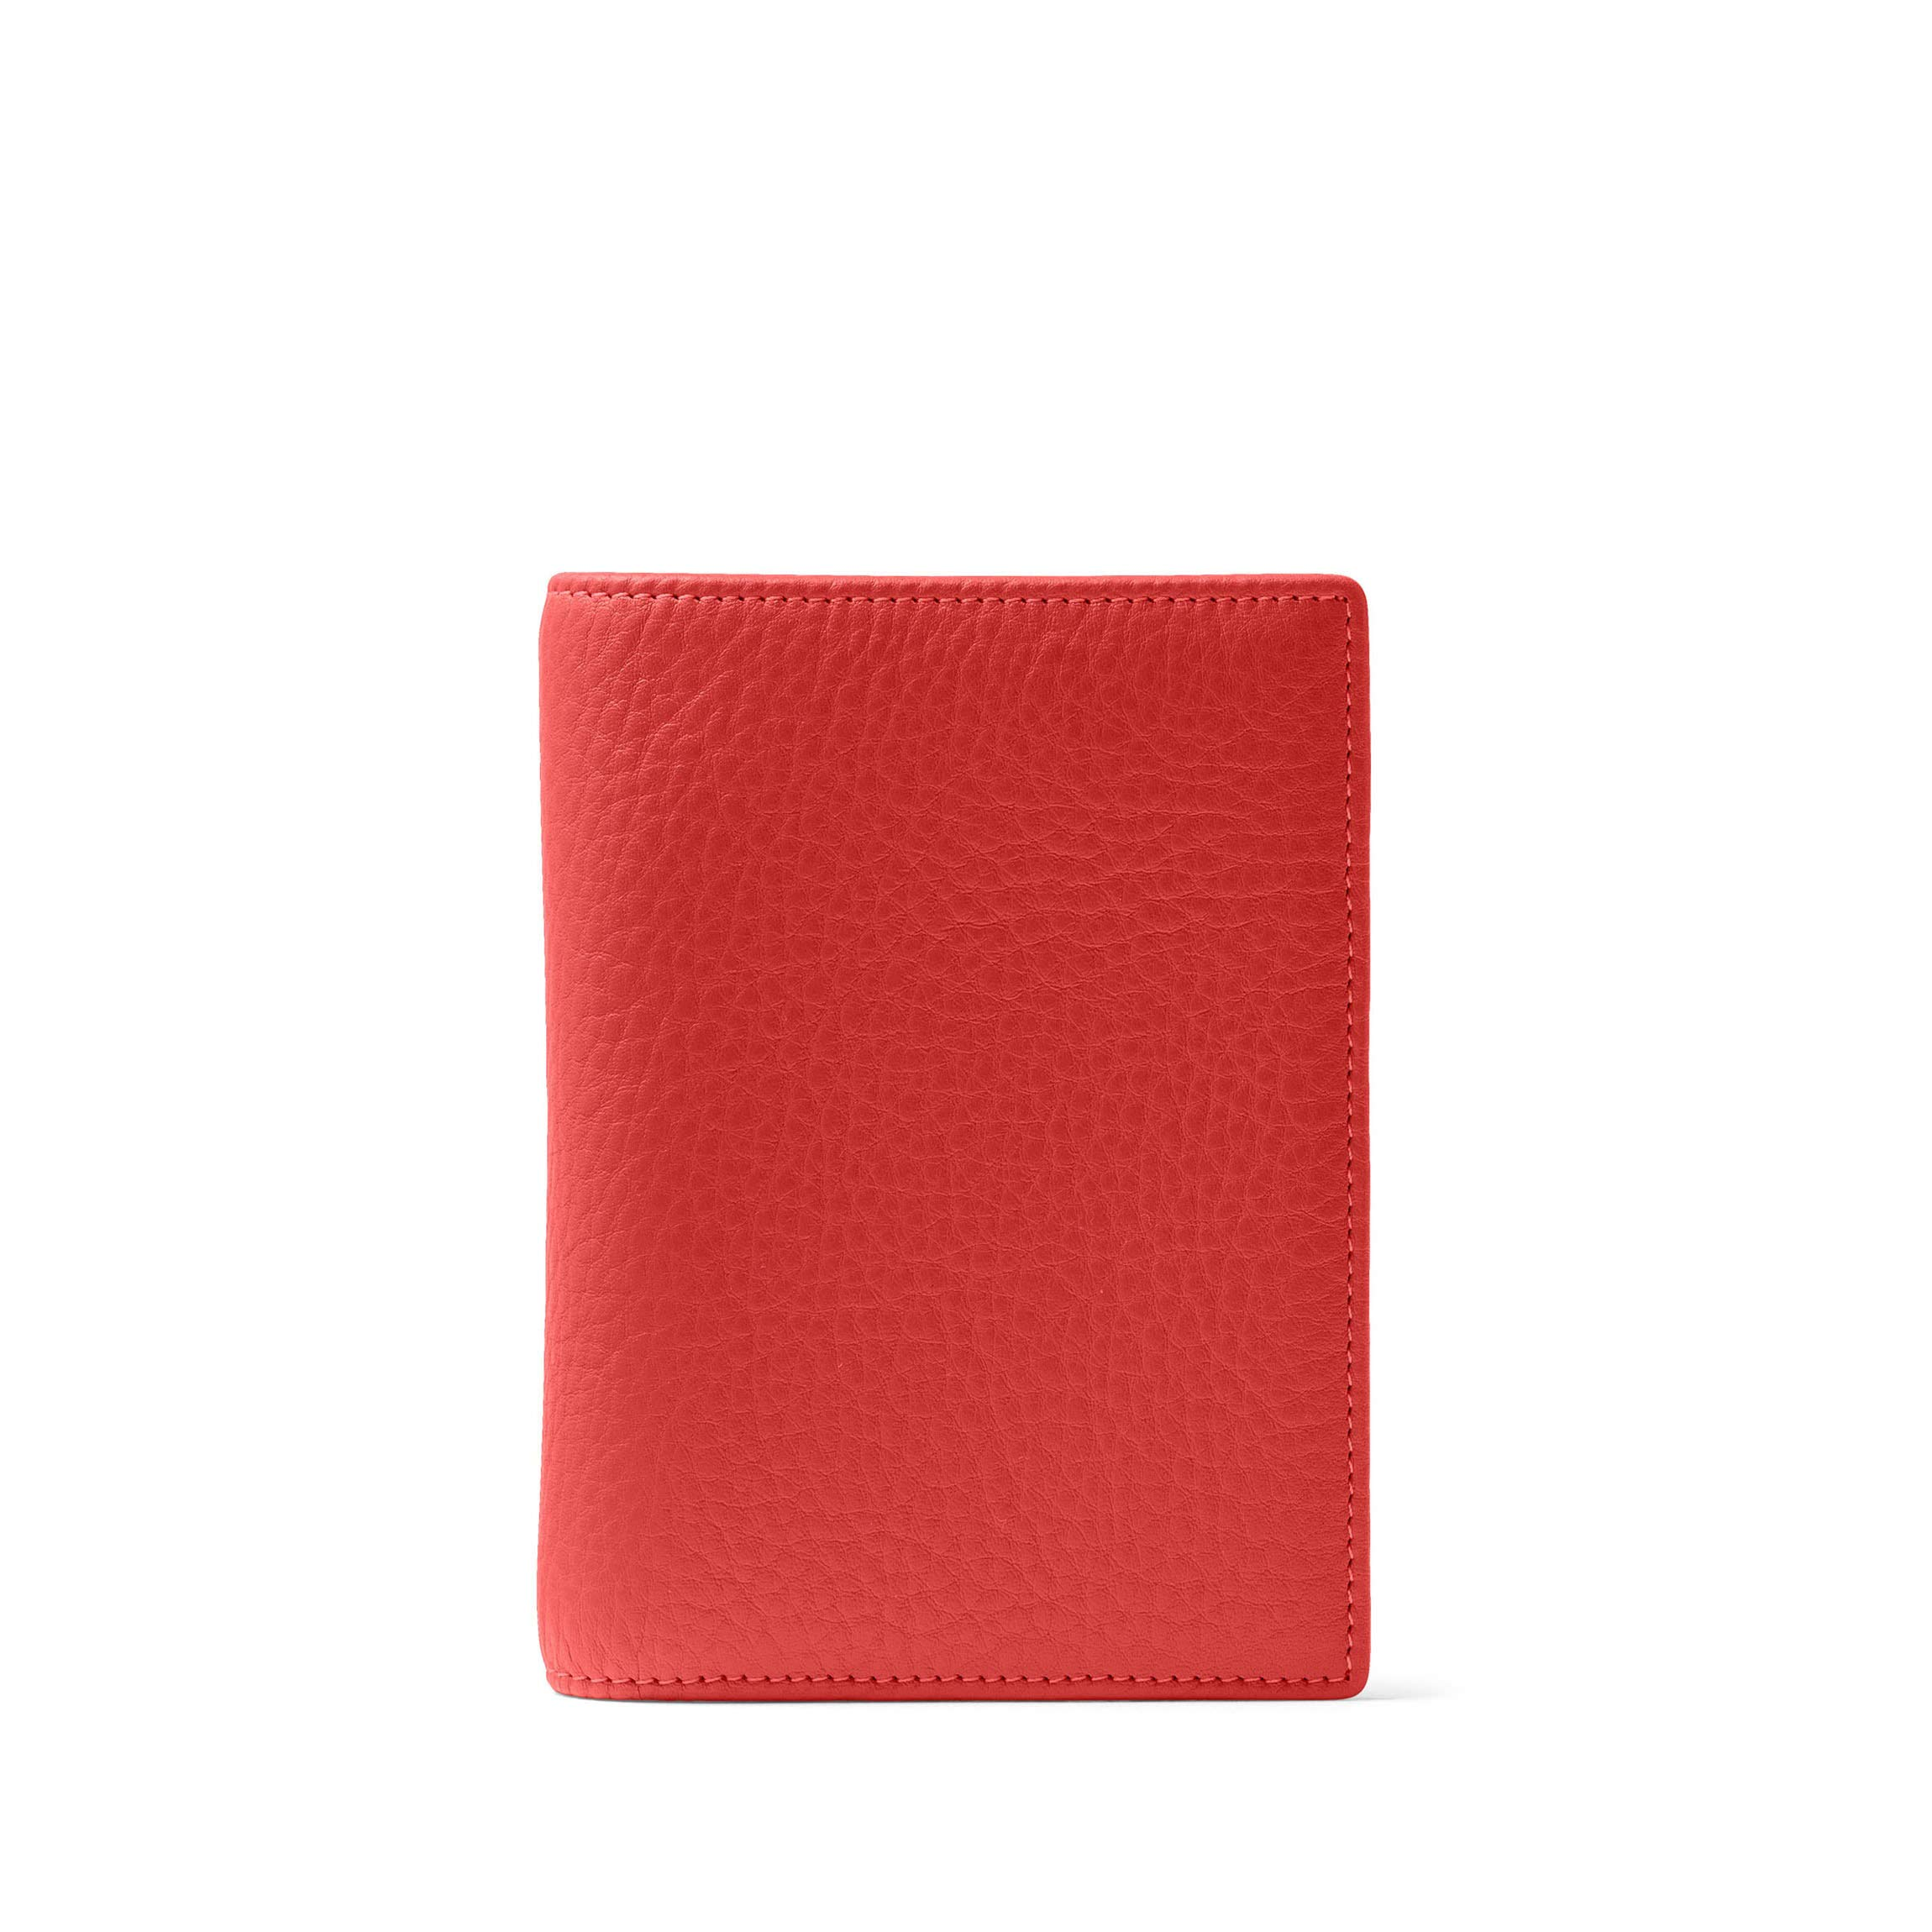 Deluxe Passport Cover - Full Grain Leather Leather - RFID Scarlet (Red)